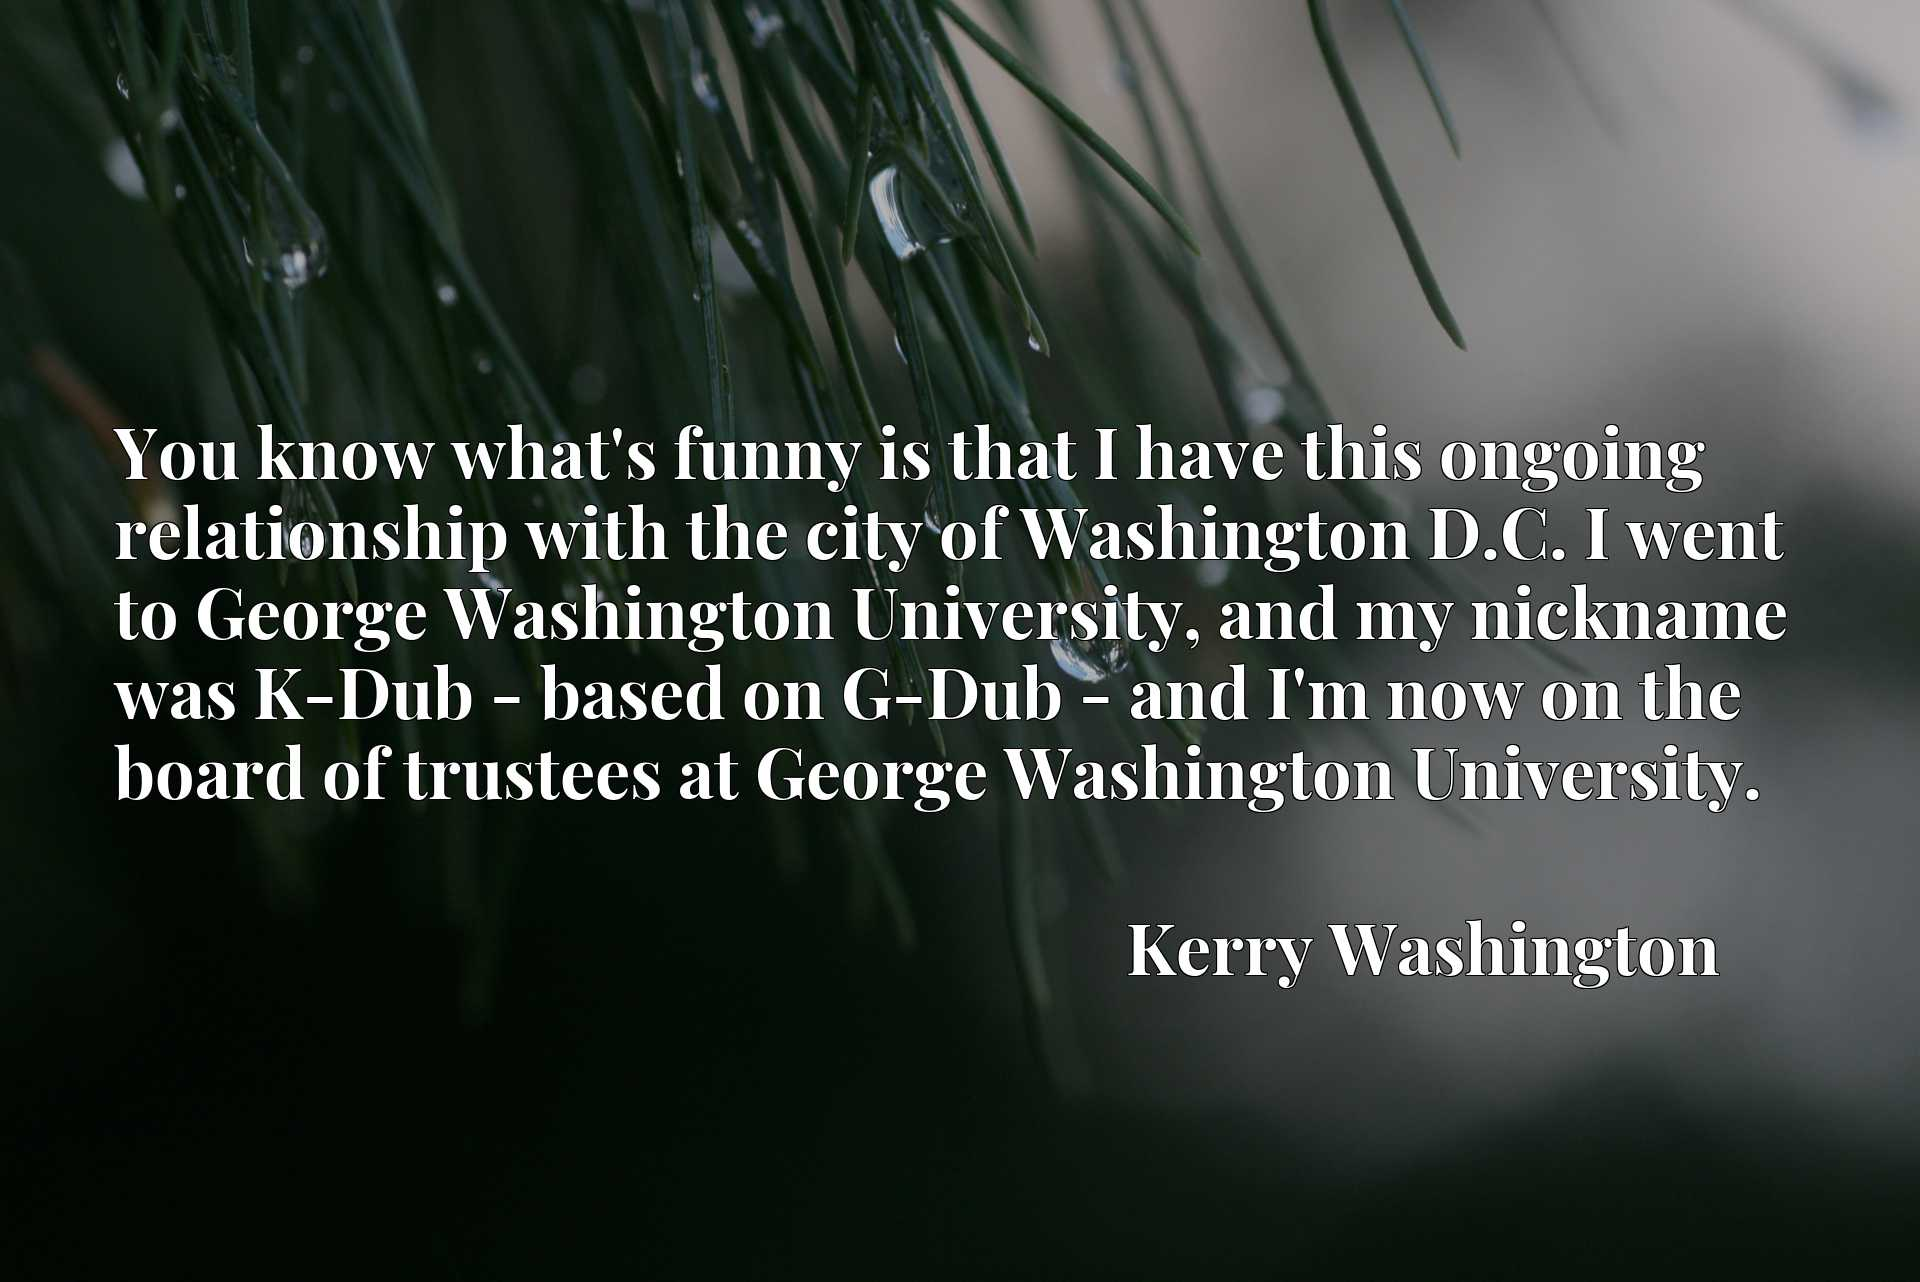 You know what's funny is that I have this ongoing relationship with the city of Washington D.C. I went to George Washington University, and my nickname was K-Dub - based on G-Dub - and I'm now on the board of trustees at George Washington University.